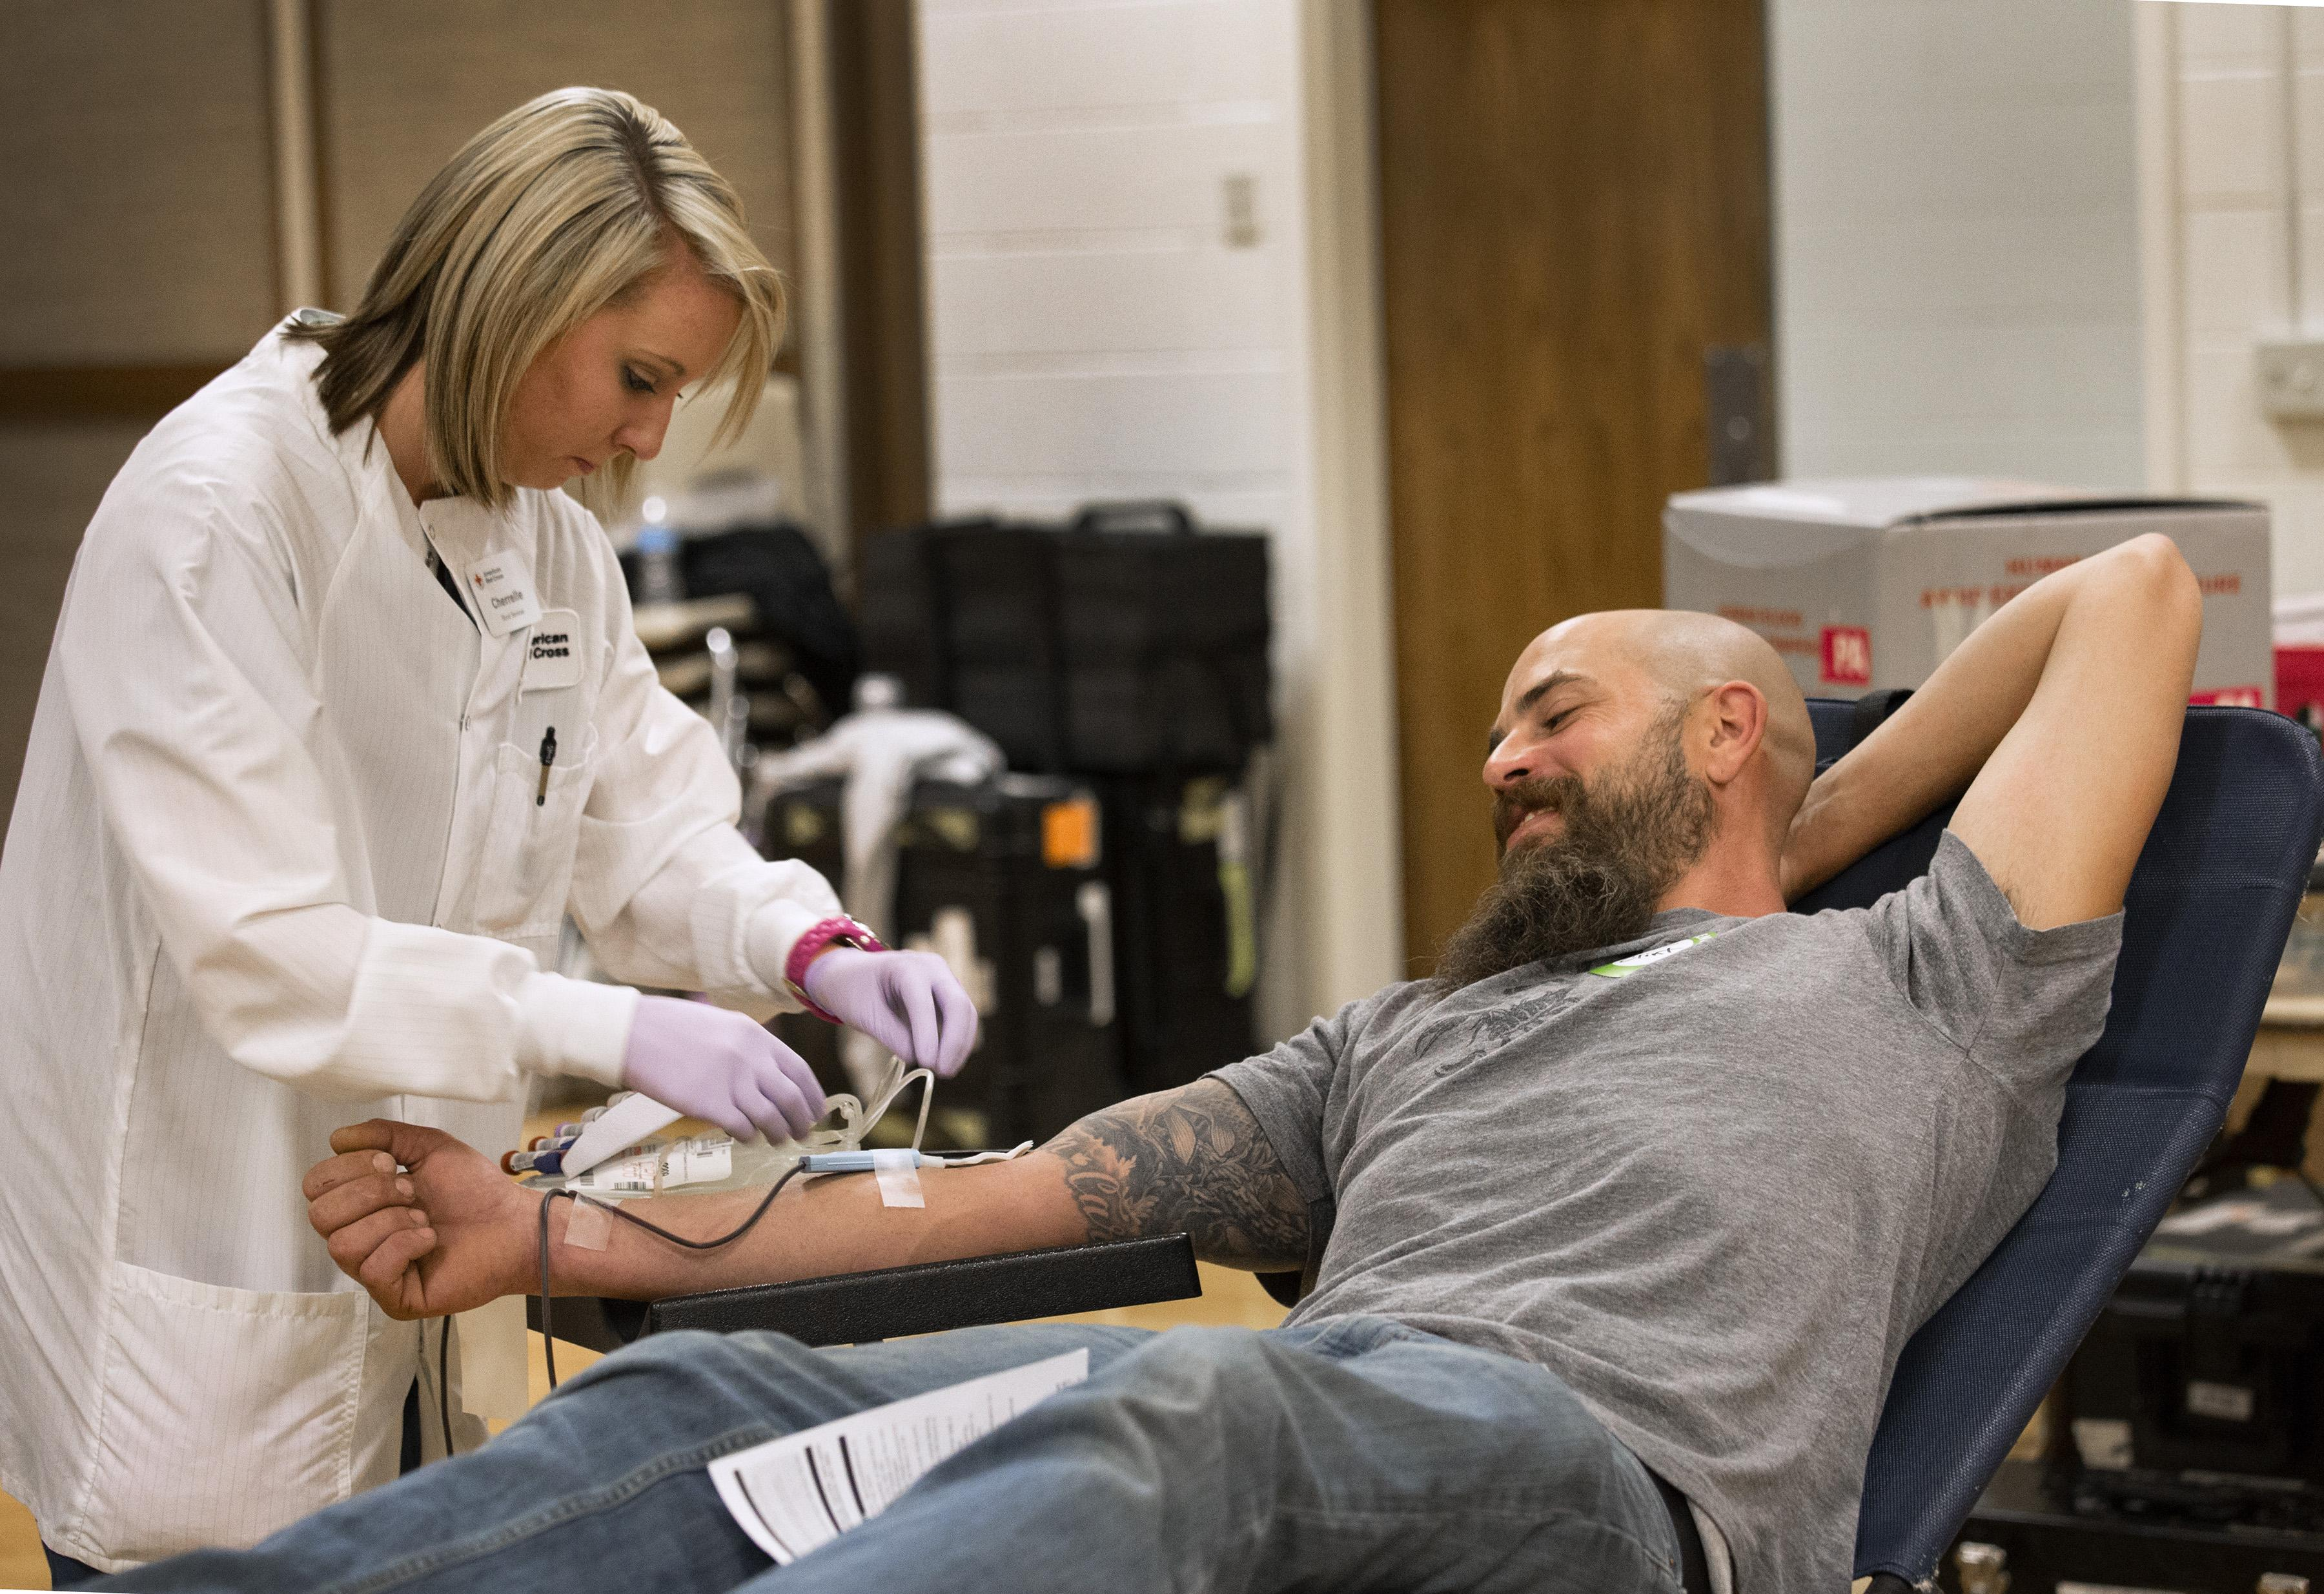 May 14, 2014. Murray, Utah. American Red Cross collections staff member Cherrelle Simon collects a blood donation from Clint Kraft.  Clint says that he gives blood because his wife suffers from a rare disease. Photo by Amanda Romney/American Red Cross